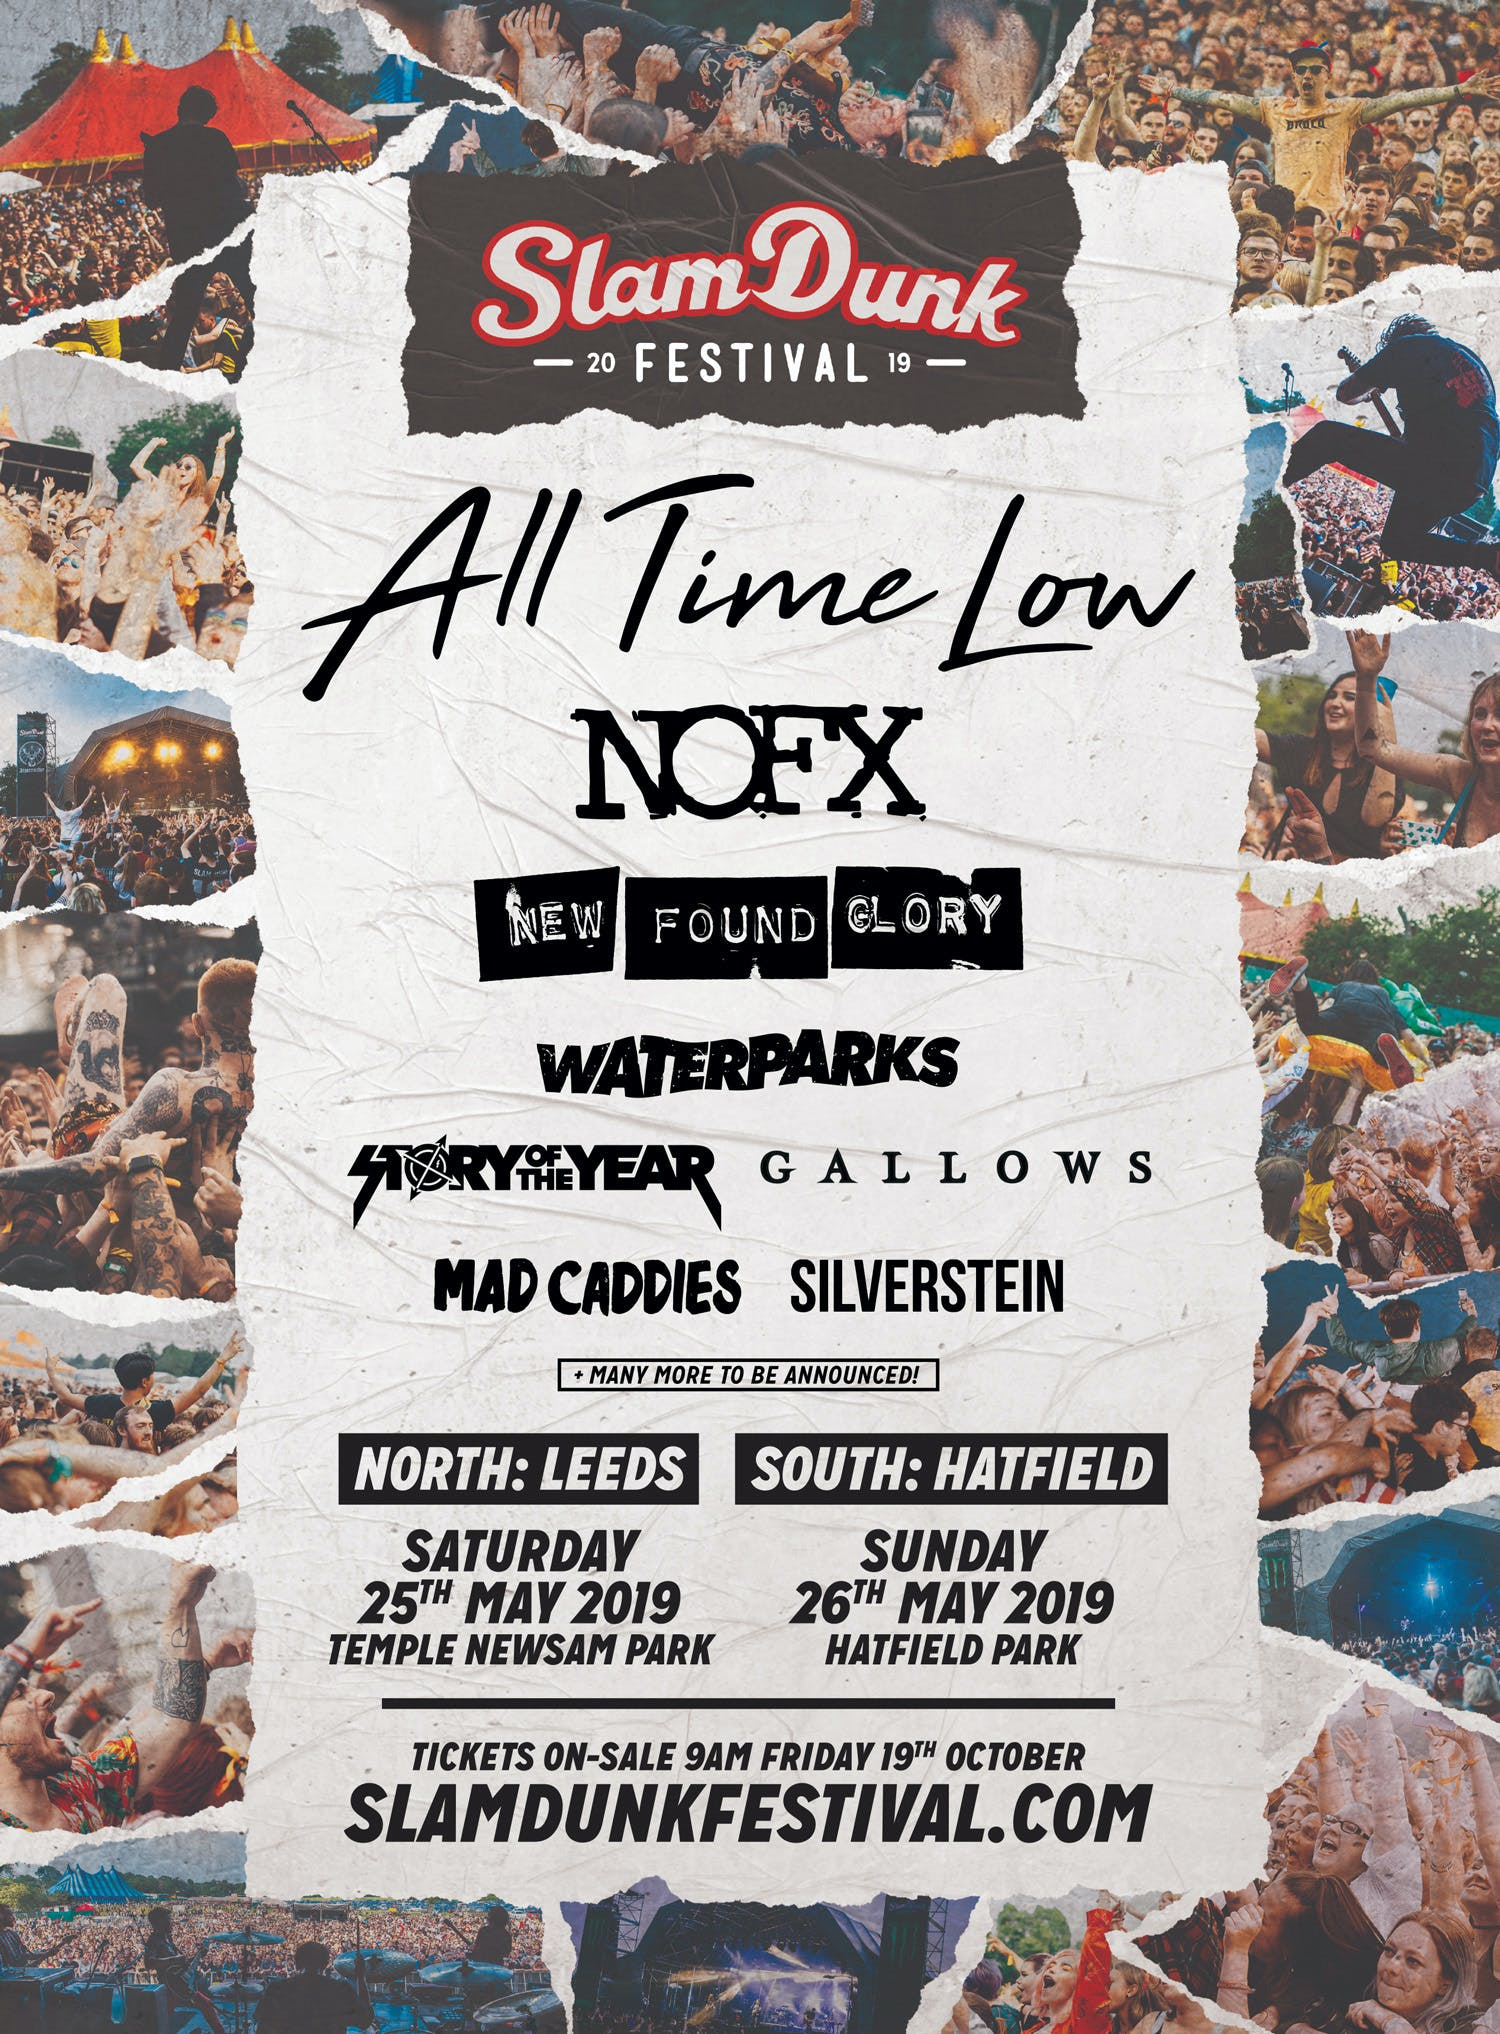 Slam Dunk 2019 Initial October Announcement